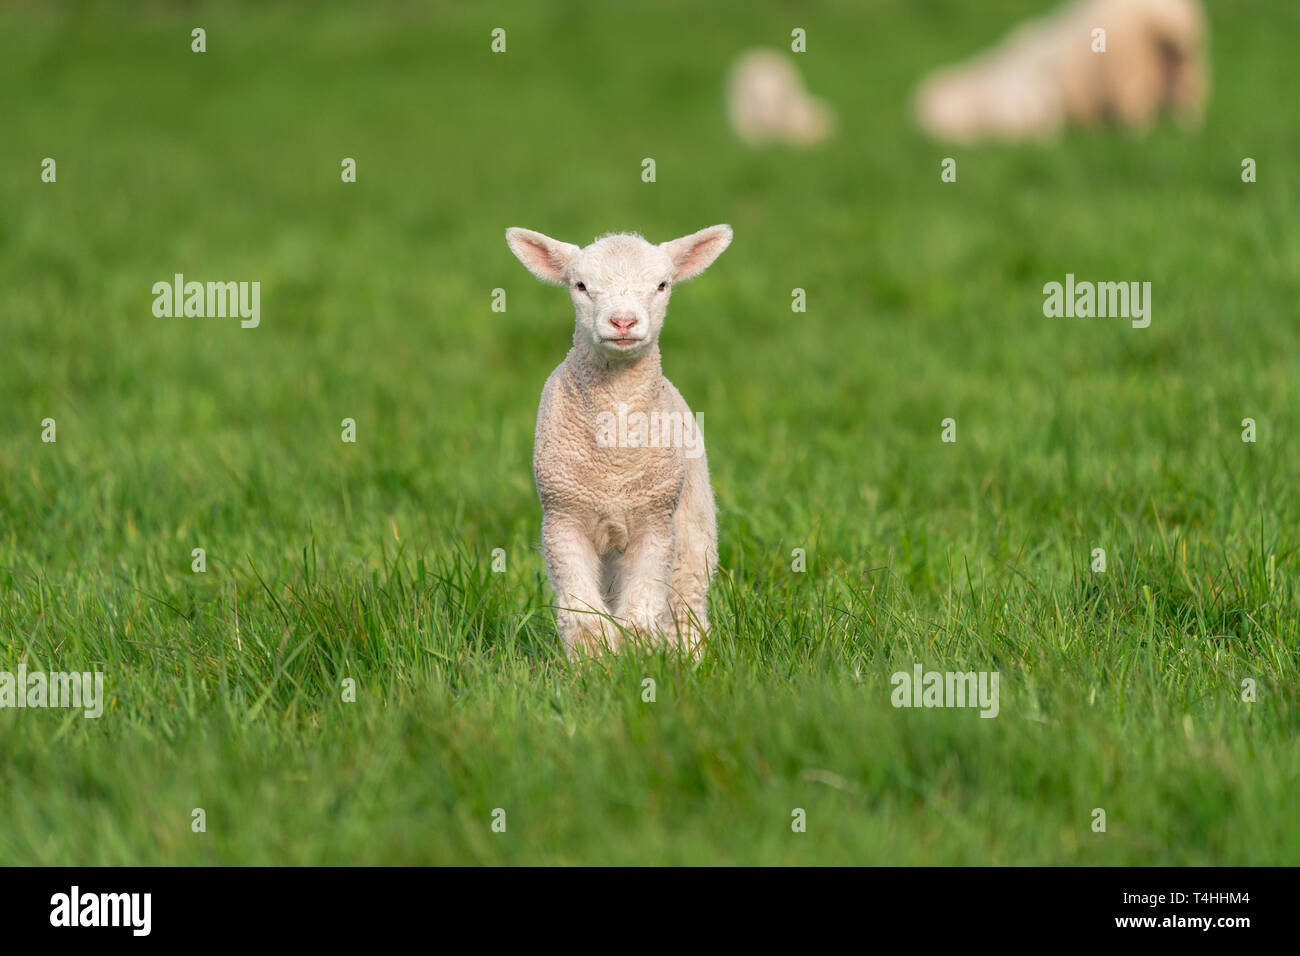 Portrait of a baby lamb in a field of green grass in Spring. Stock Photo